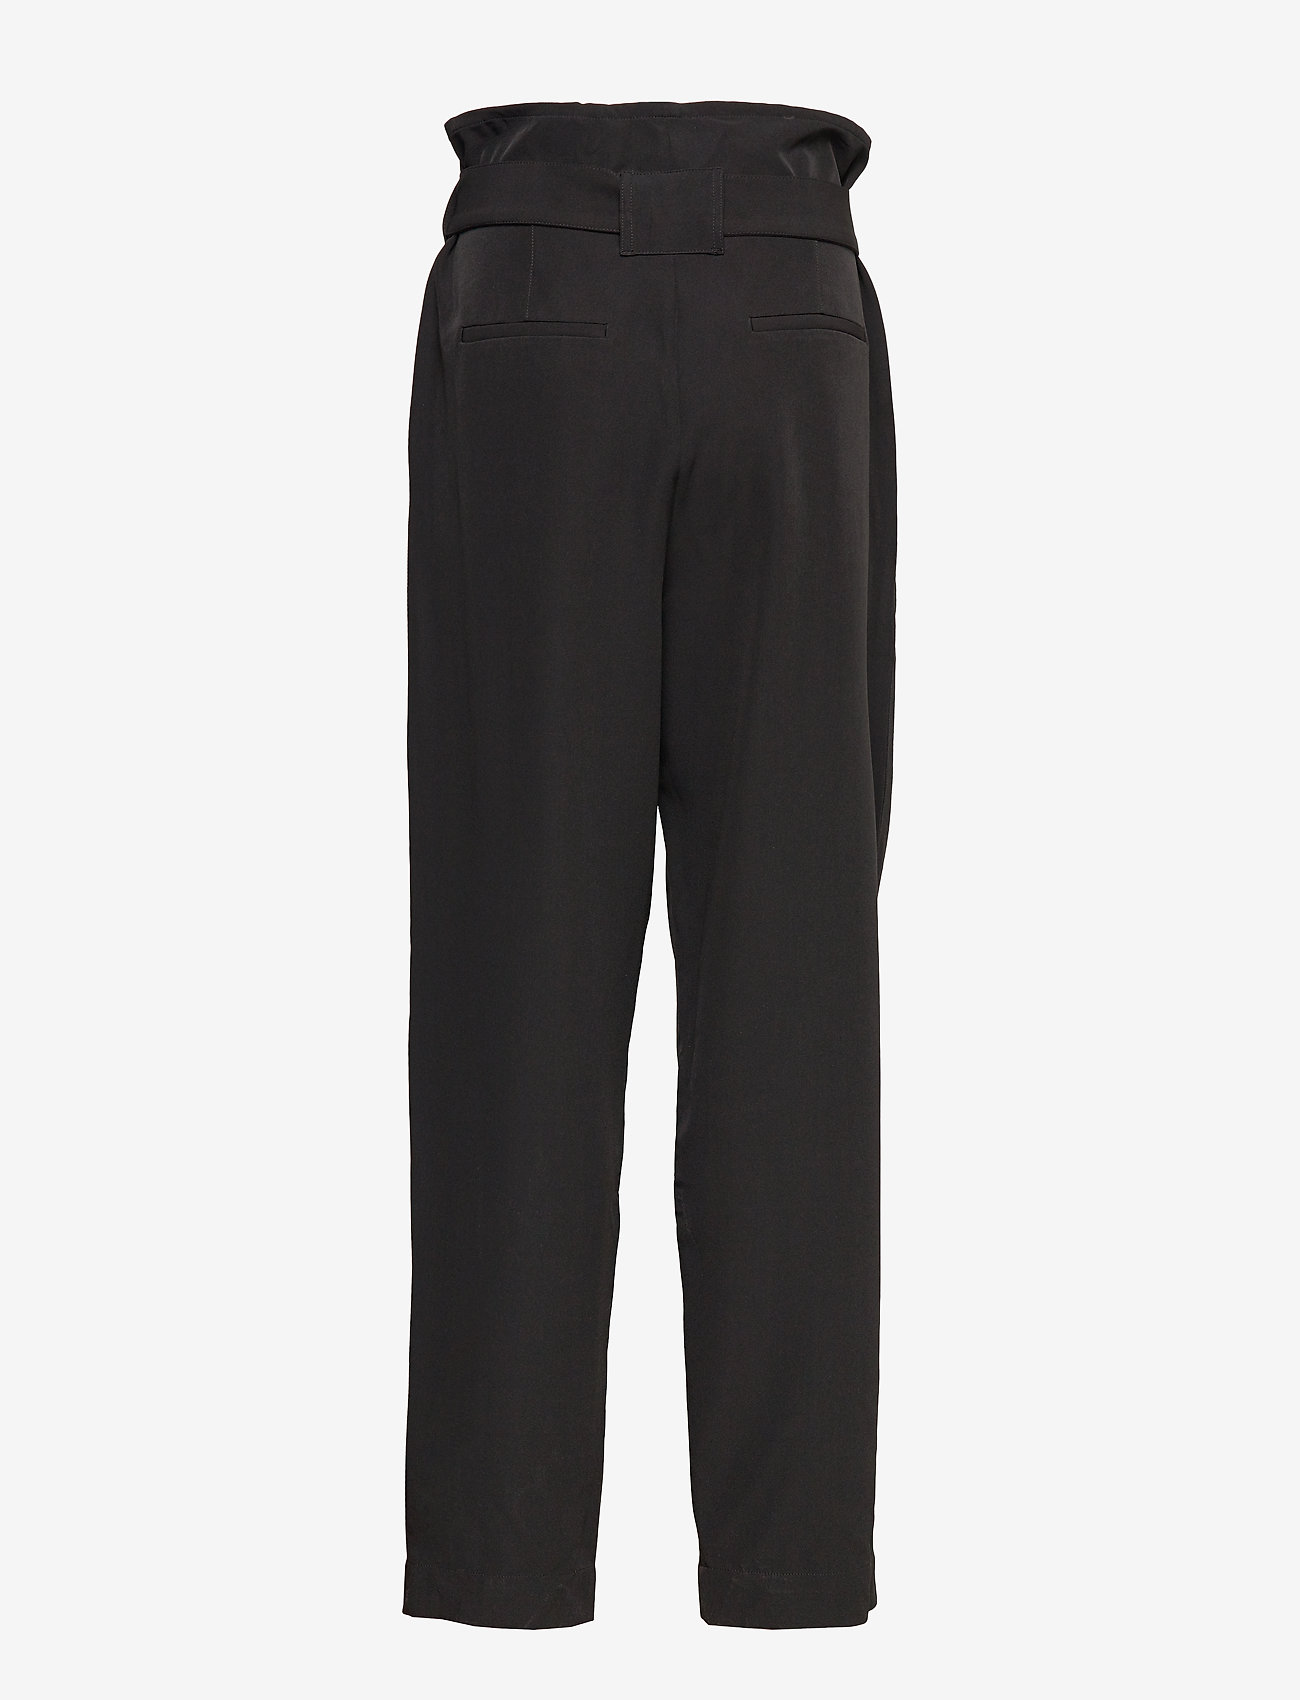 Veronique Pleat Pants (Black) (778 kr) - DESIGNERS, REMIX